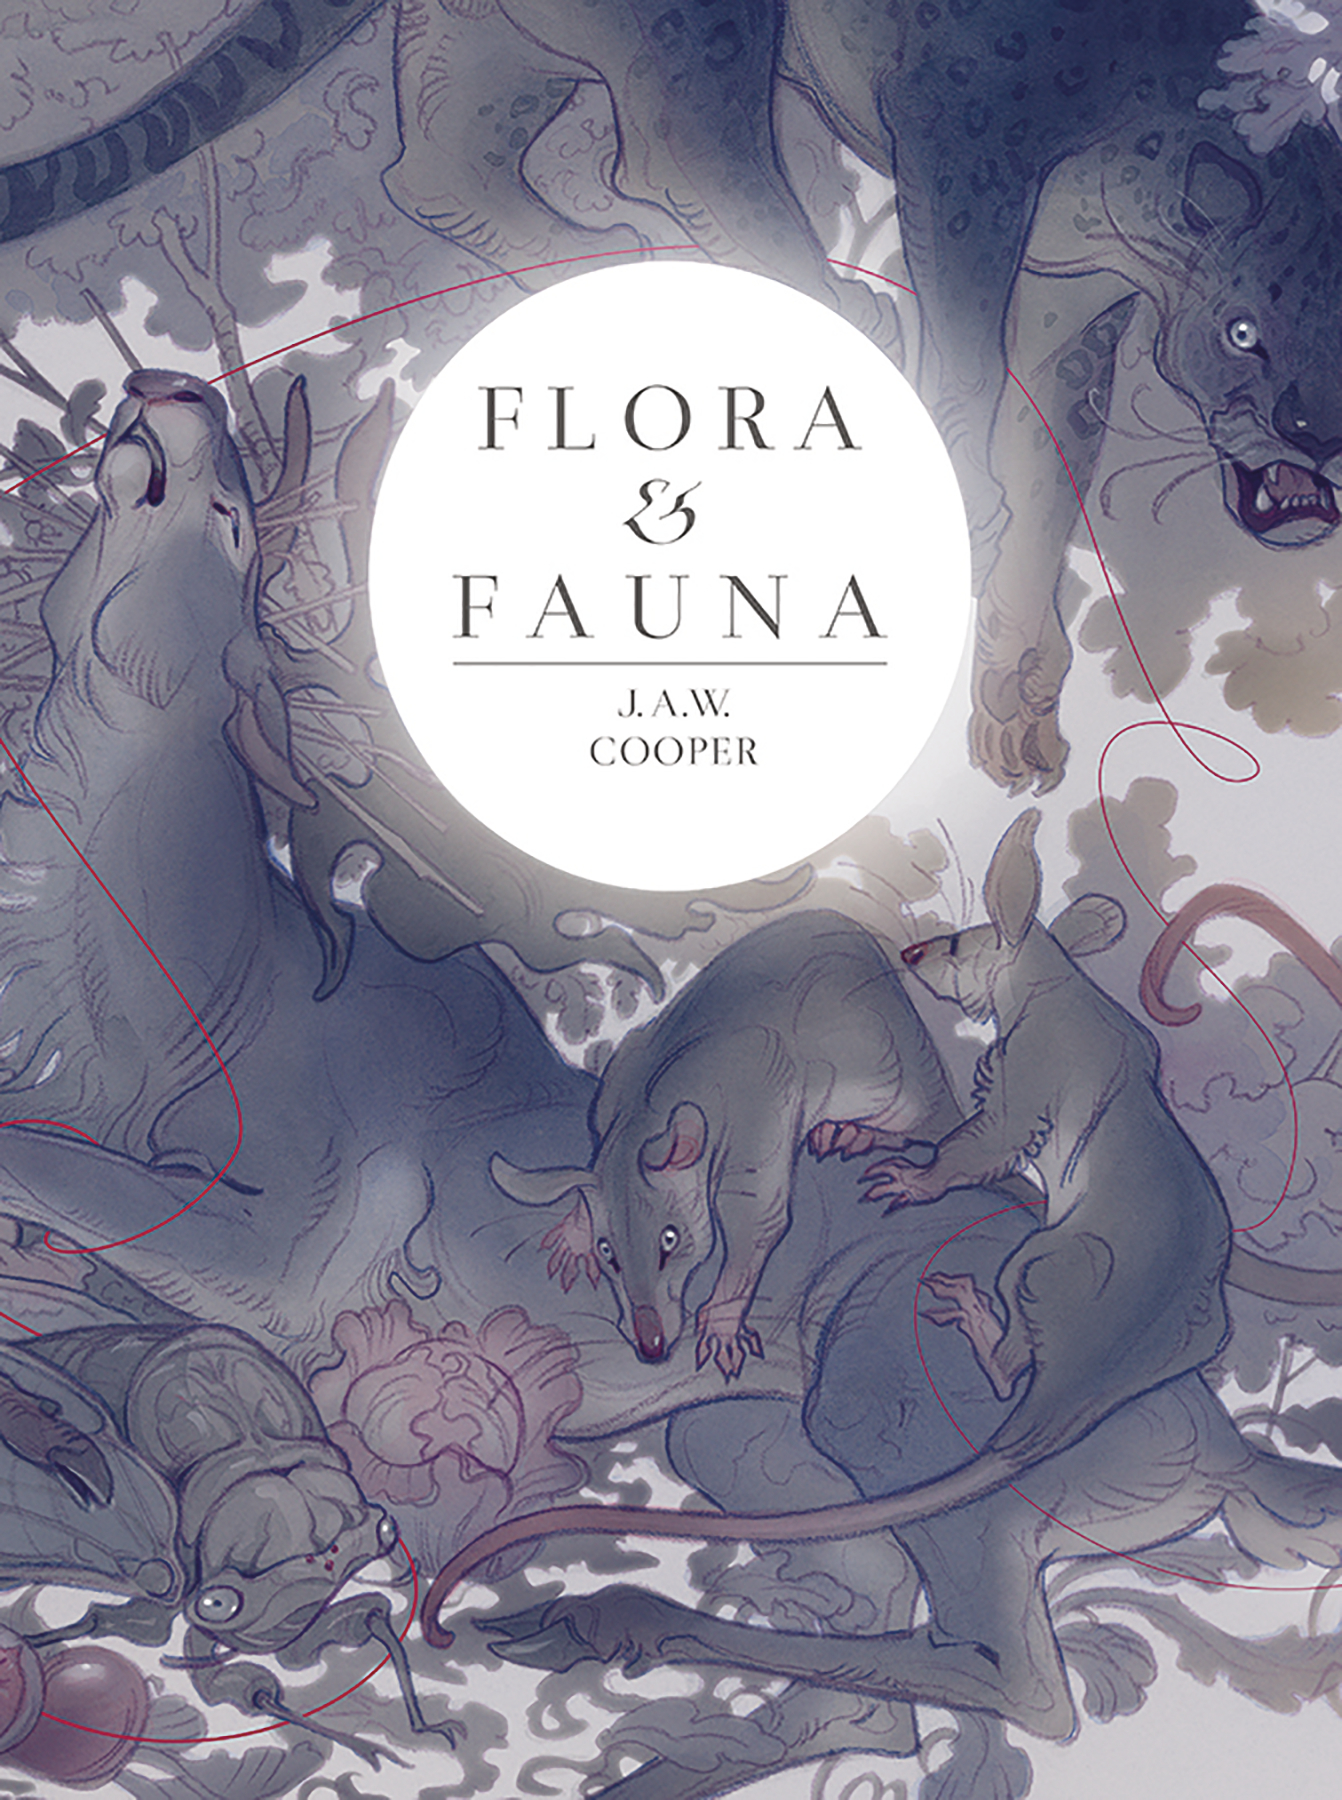 JAW COOPER ART BOOK FLORA & FAUNA (MR)